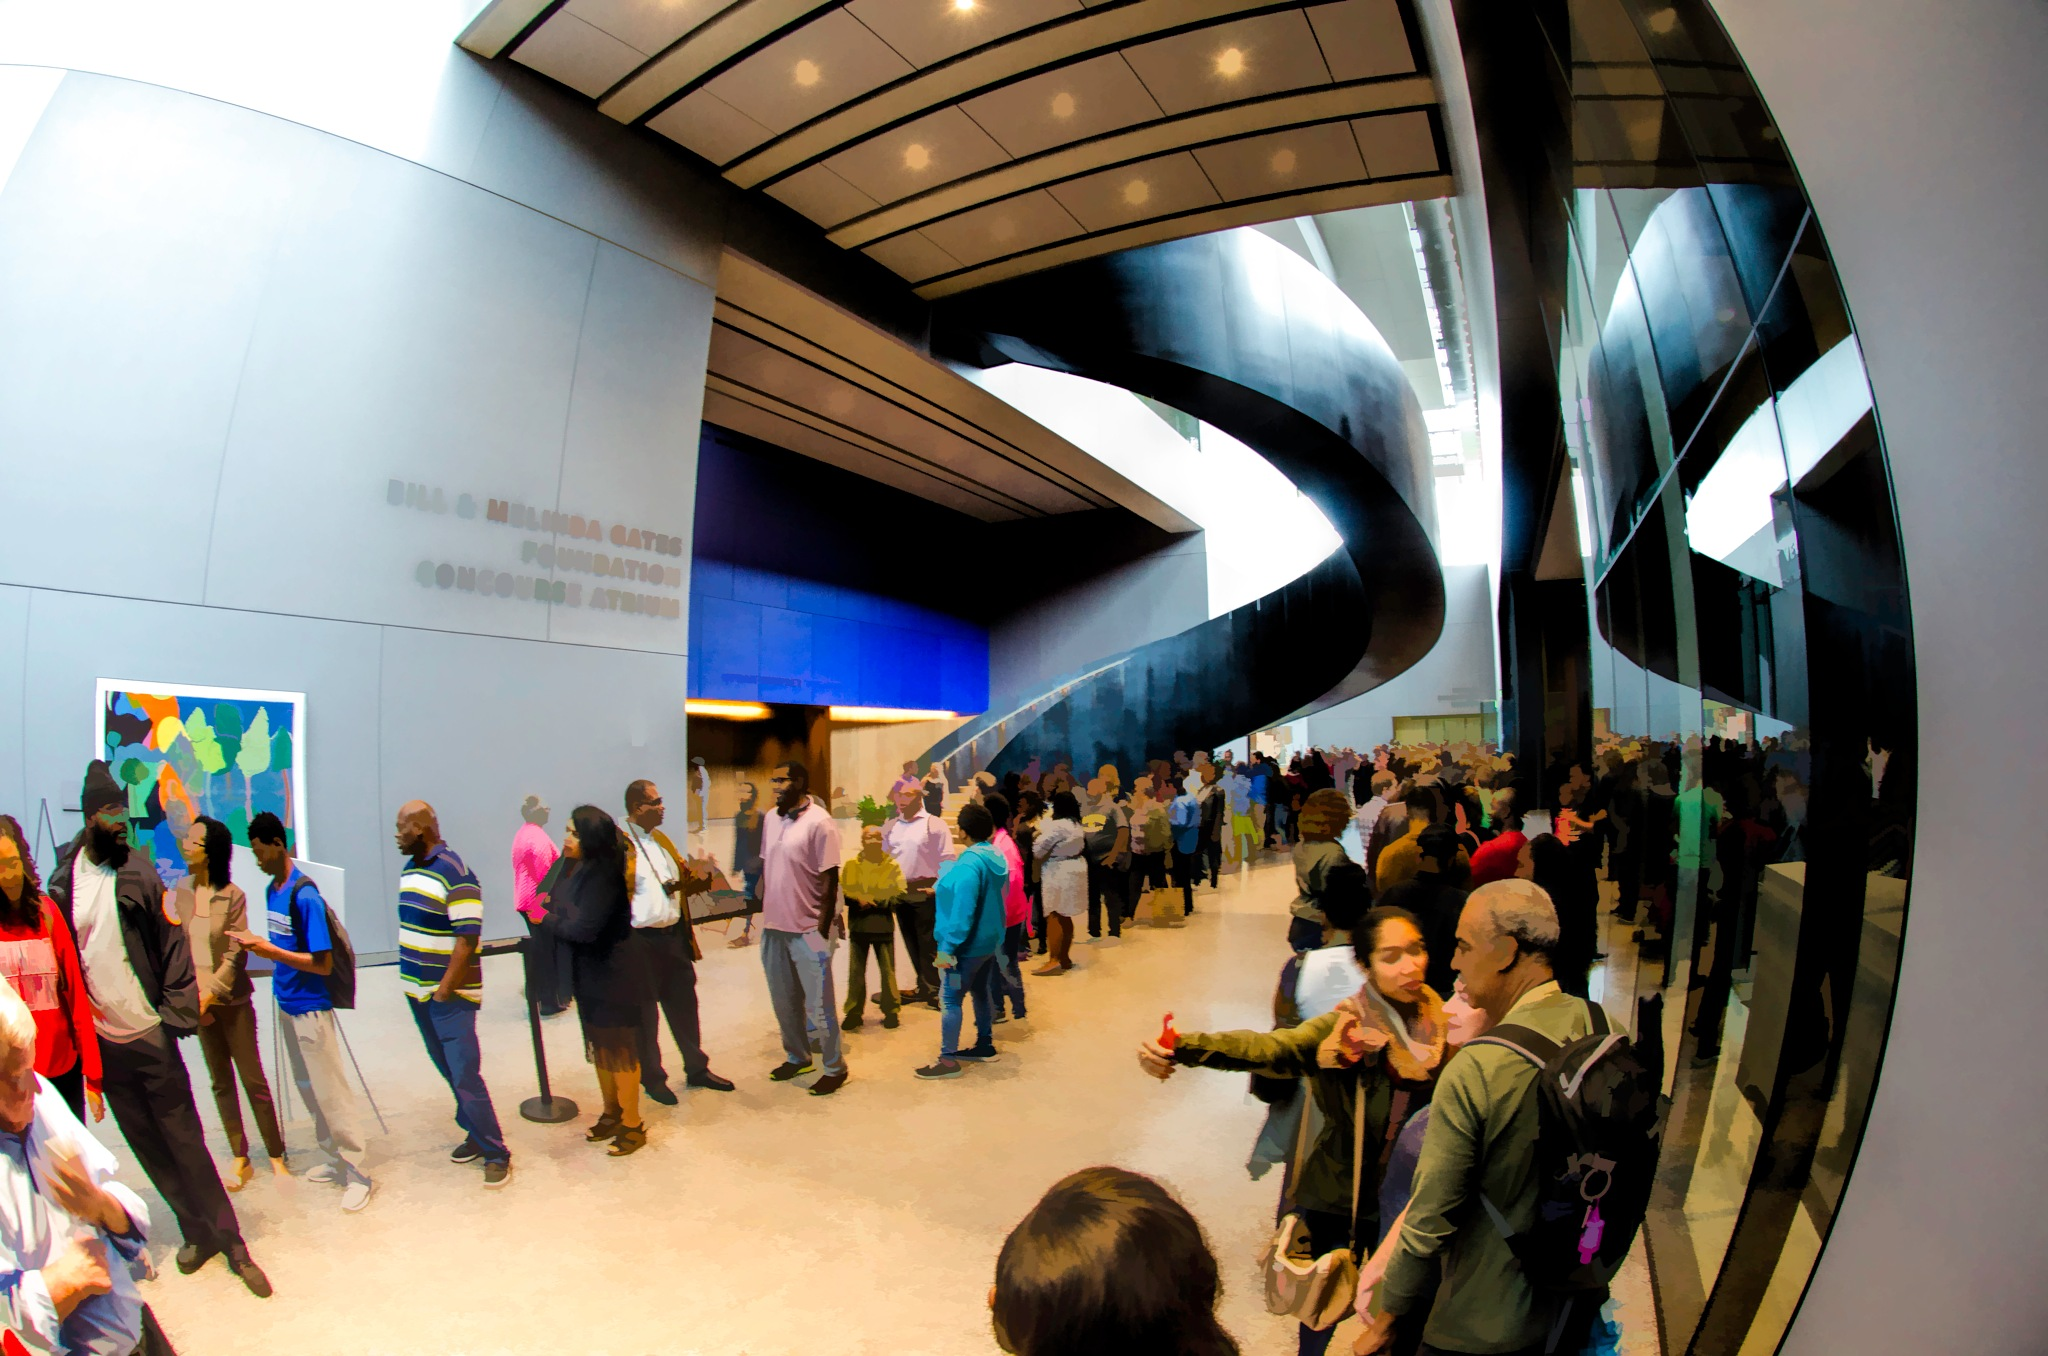 NMAAHC 2 by JohnEllingson